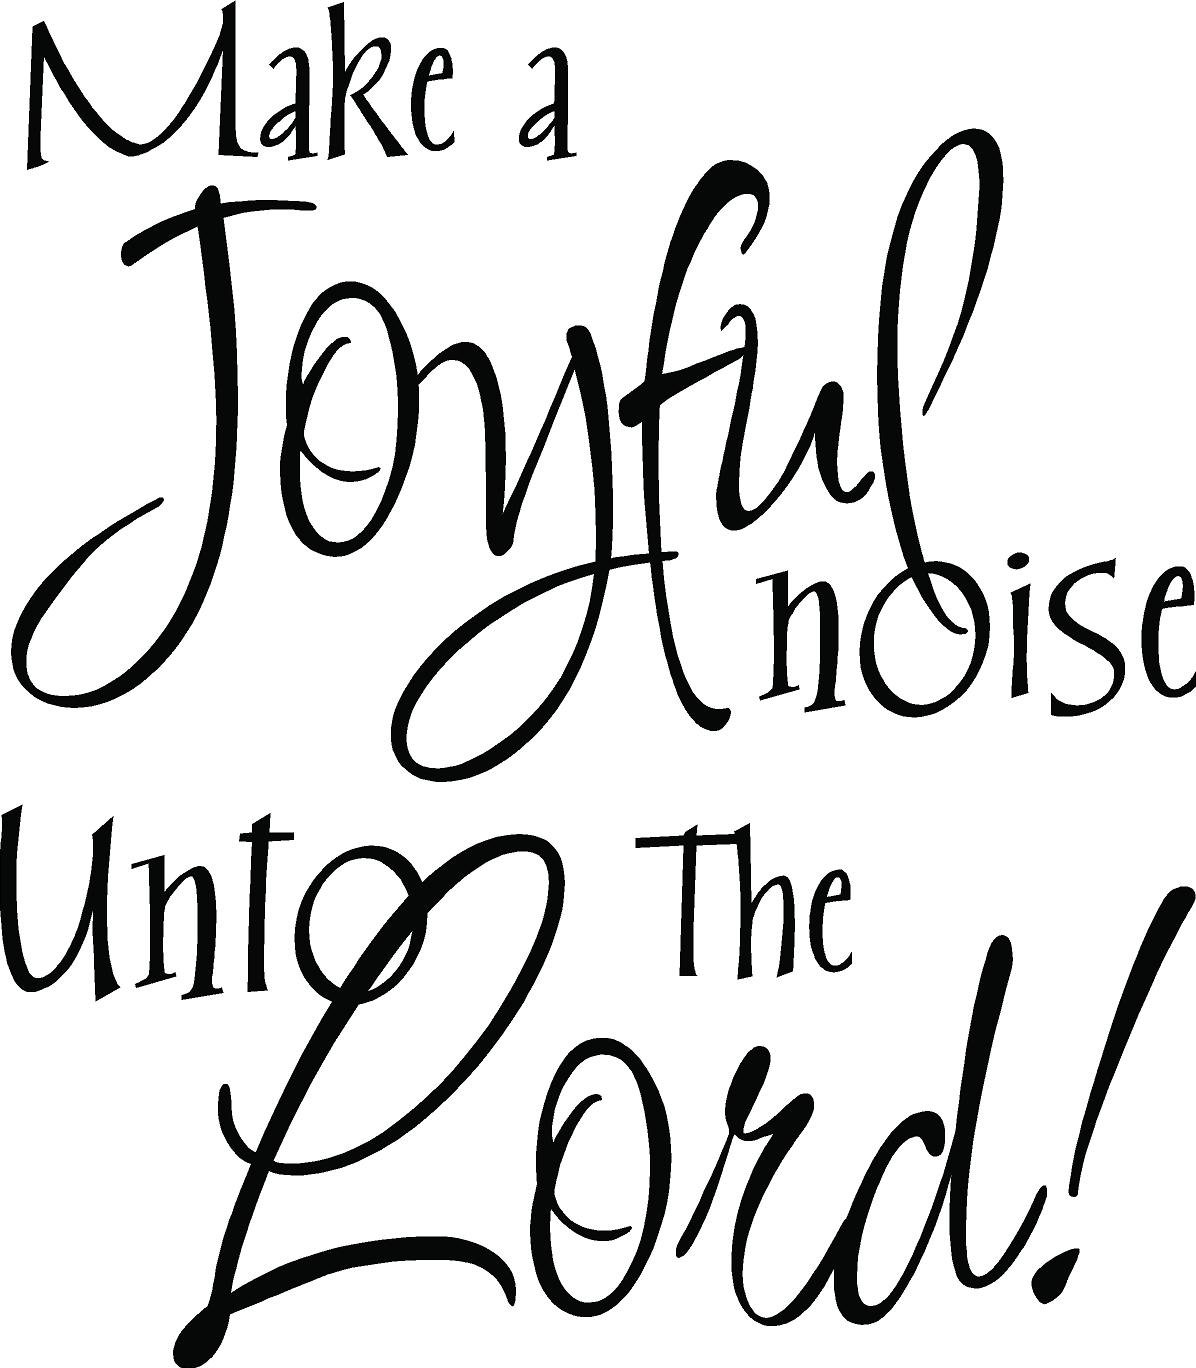 Make a joyful noise unto the lord religious wall art cute vinyl Noise Color Sheet David Dances Before God Color Page Praise the Lord Coloring Page